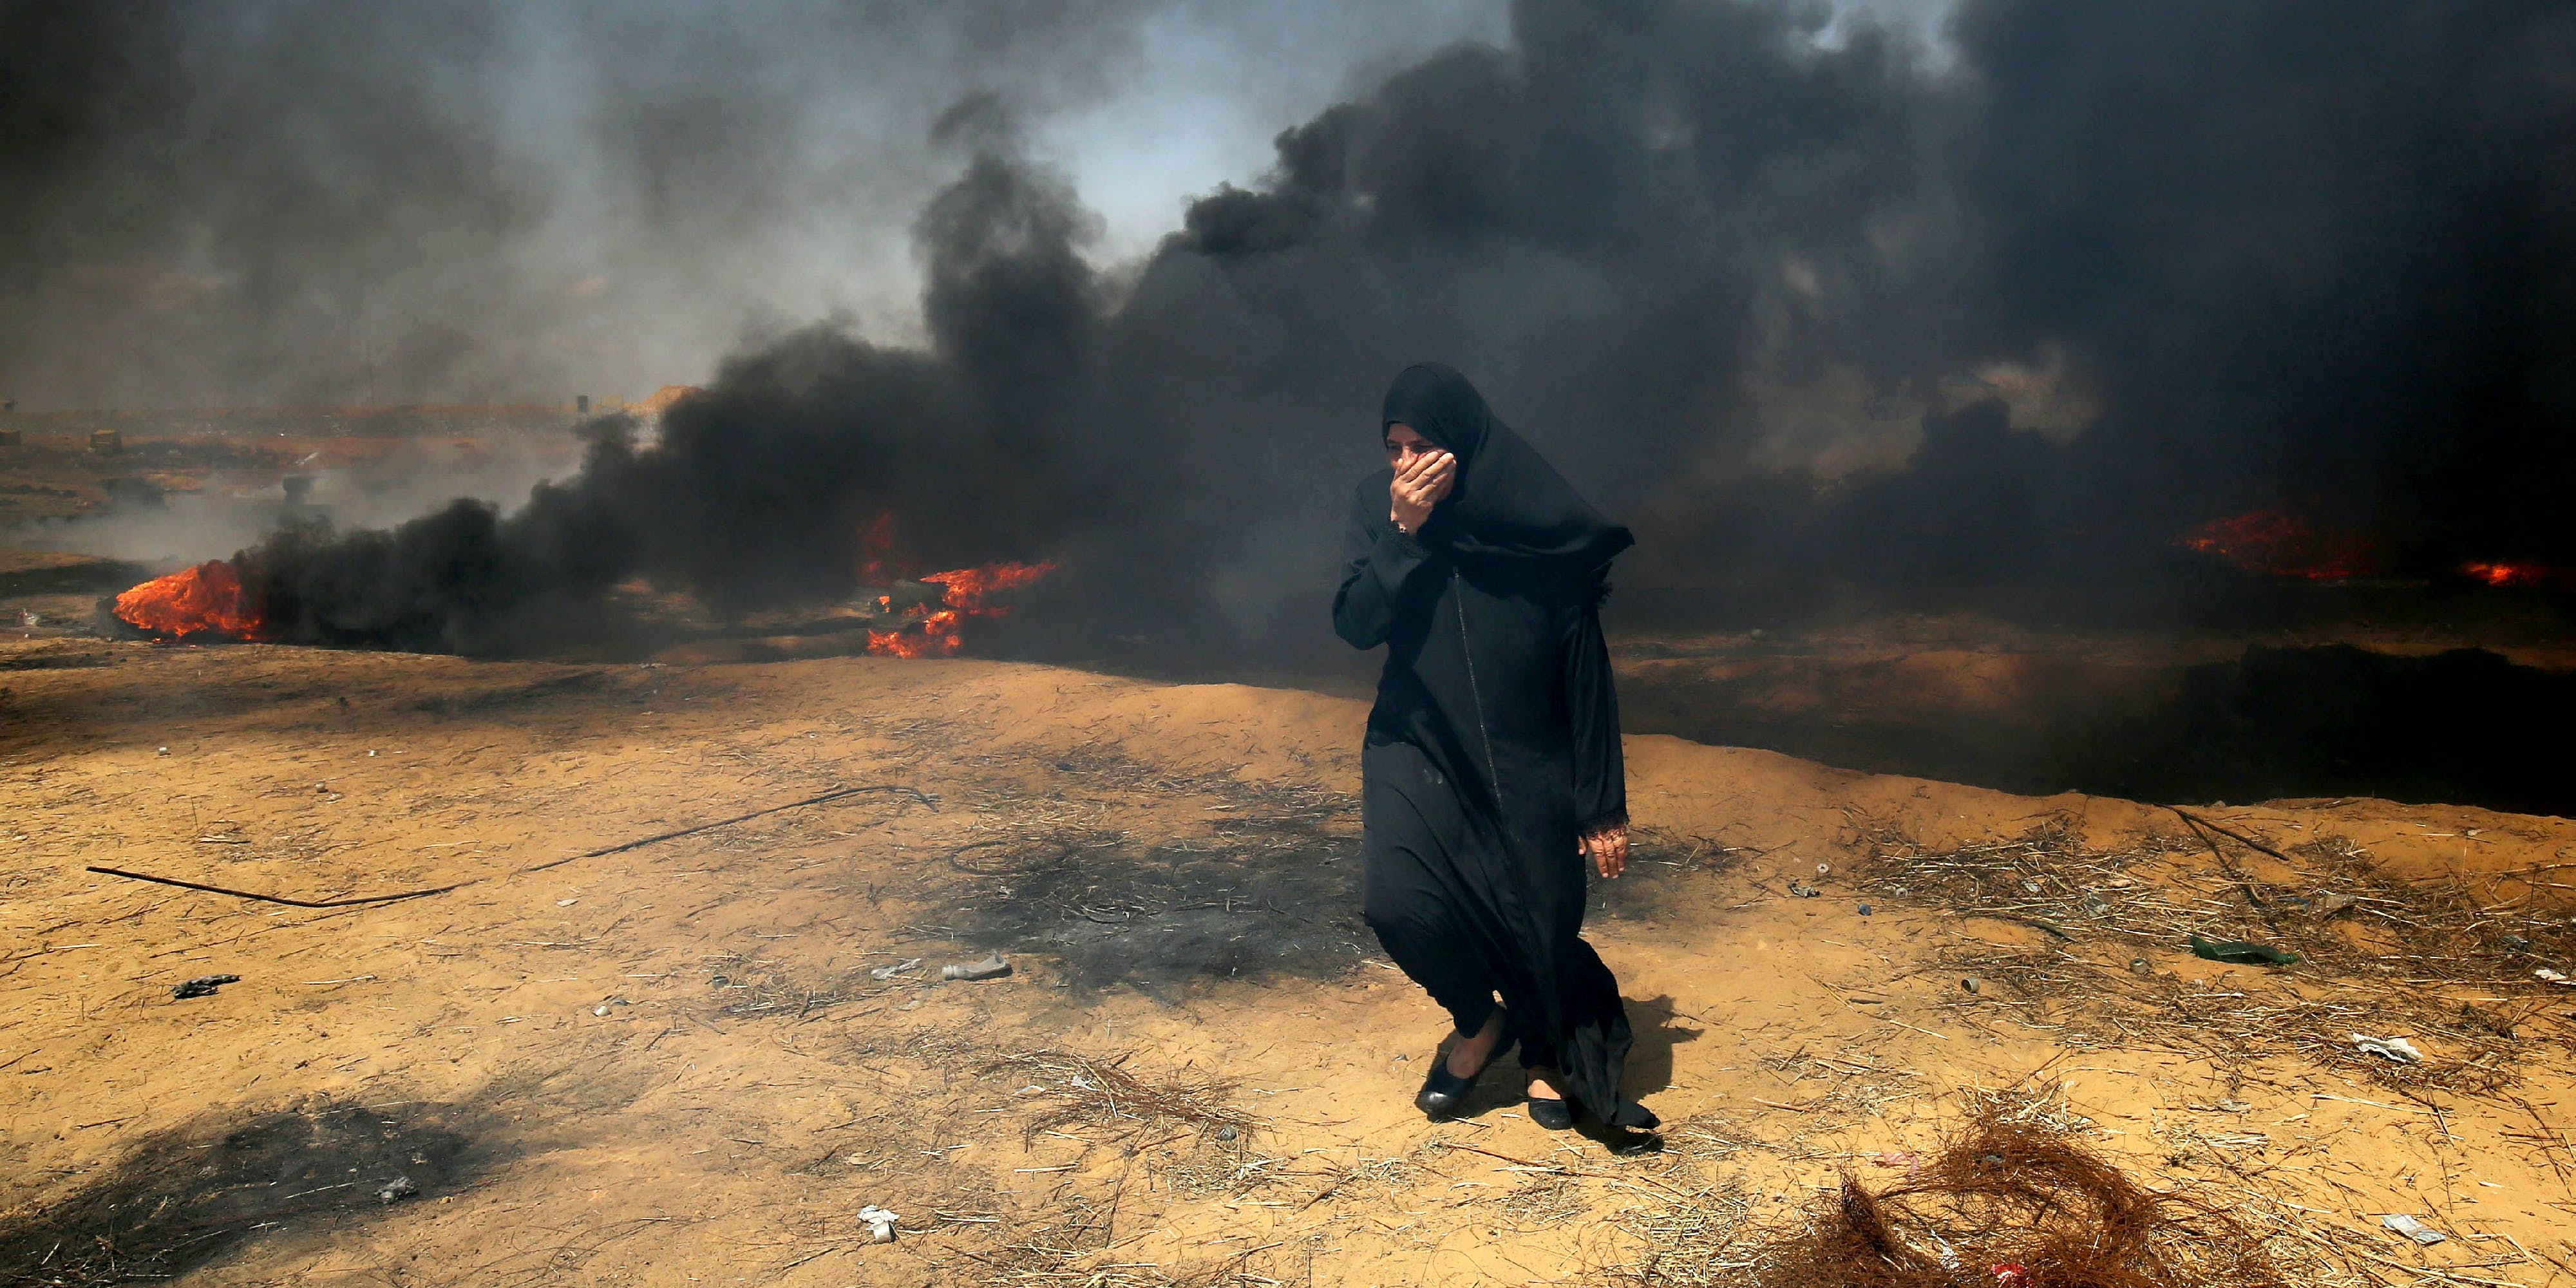 As Gaza Sinks Into Desperation, A New Book Makes the Case Against Israeli Brutality